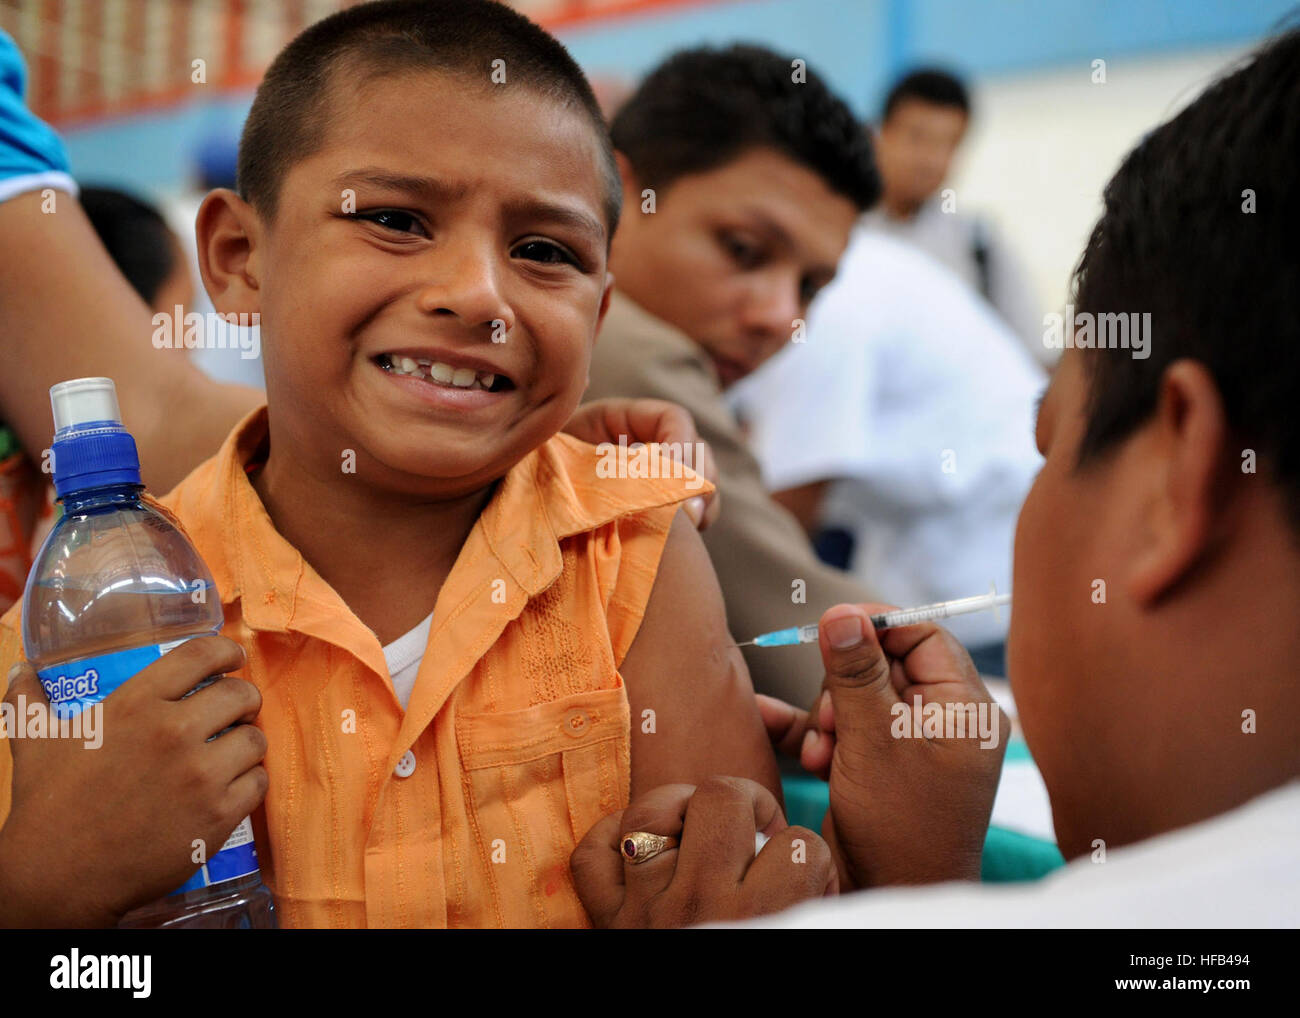 A Costa Rican boy receives a shot from a Costa Rican nurse during a Pacific Partnership 2010 community service event. - Stock Image